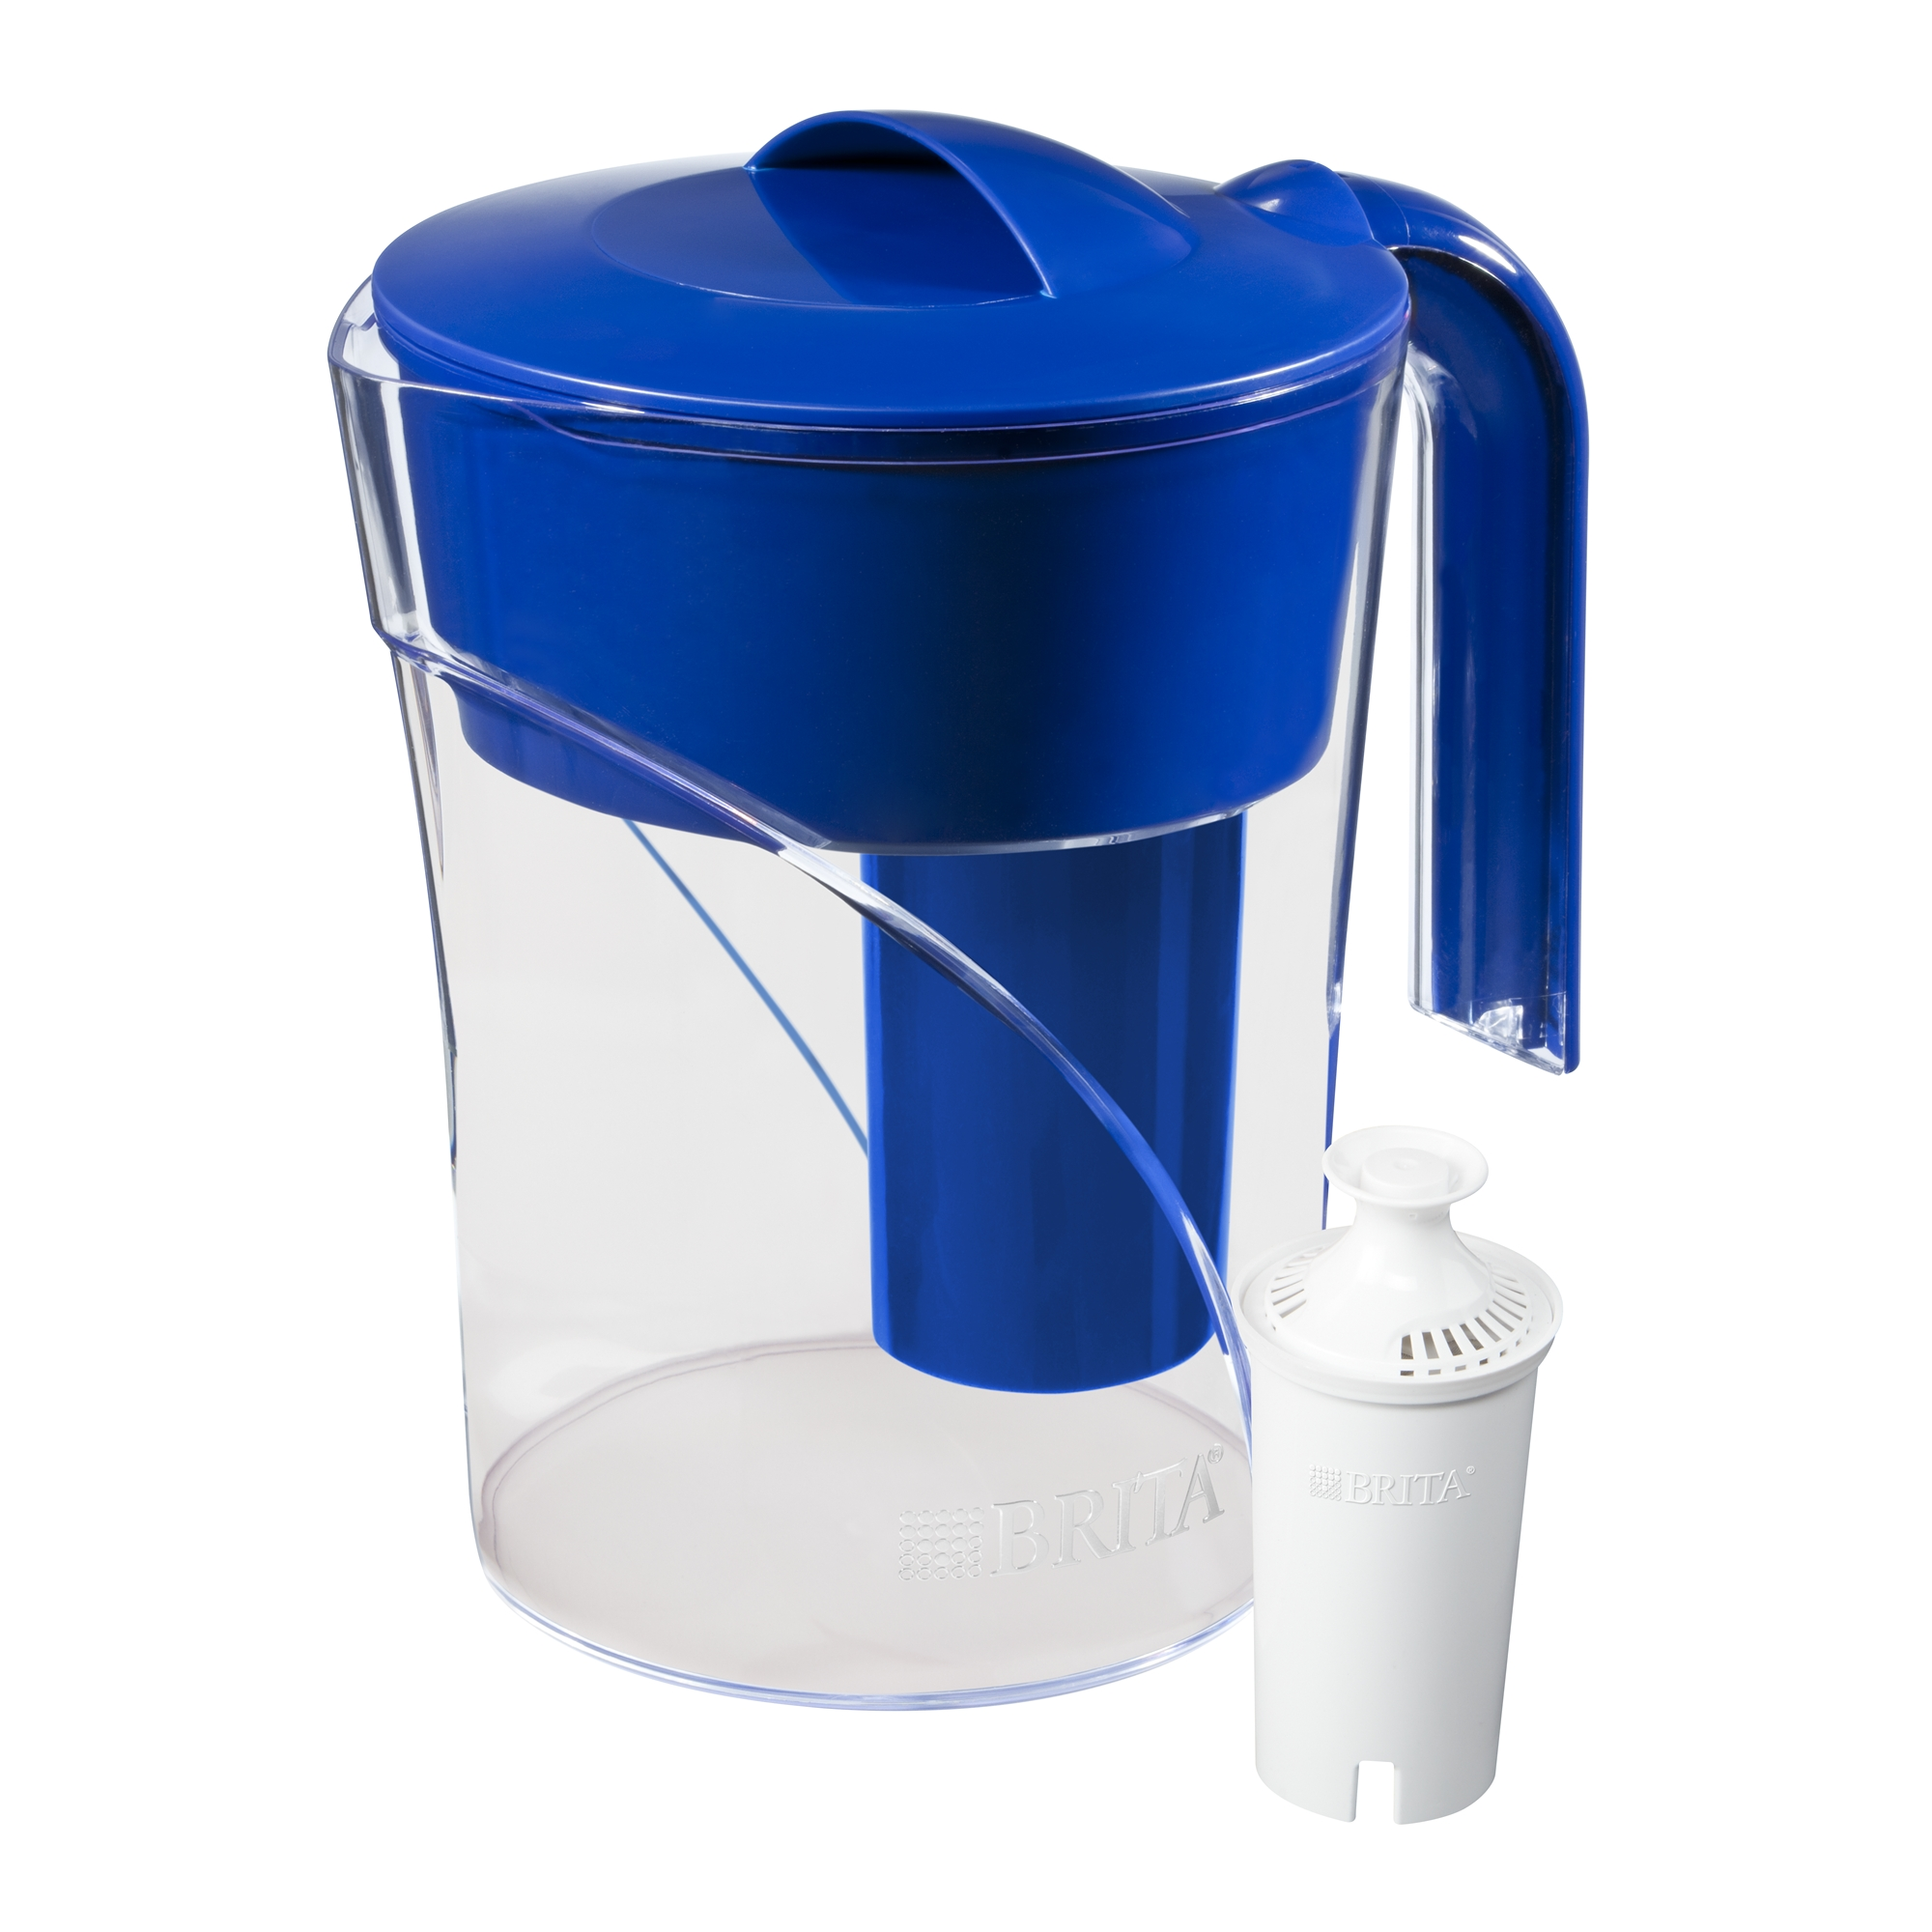 Brita Small Mist Water Pitcher with Filter - BPA Free - Blue - 6 Cup